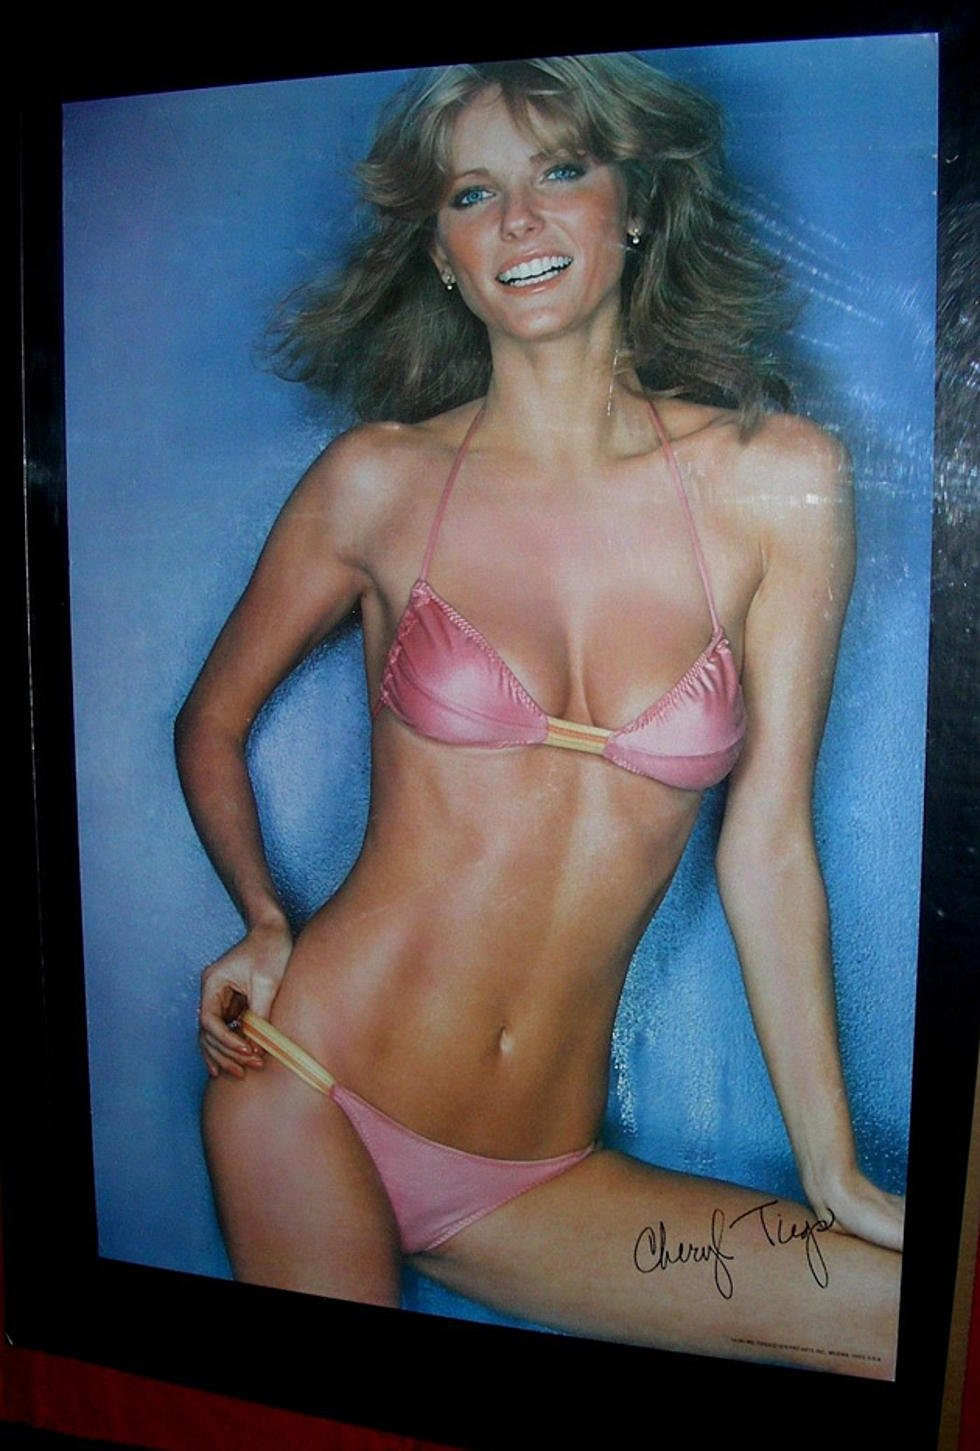 hottest posters of the 70s and 80s